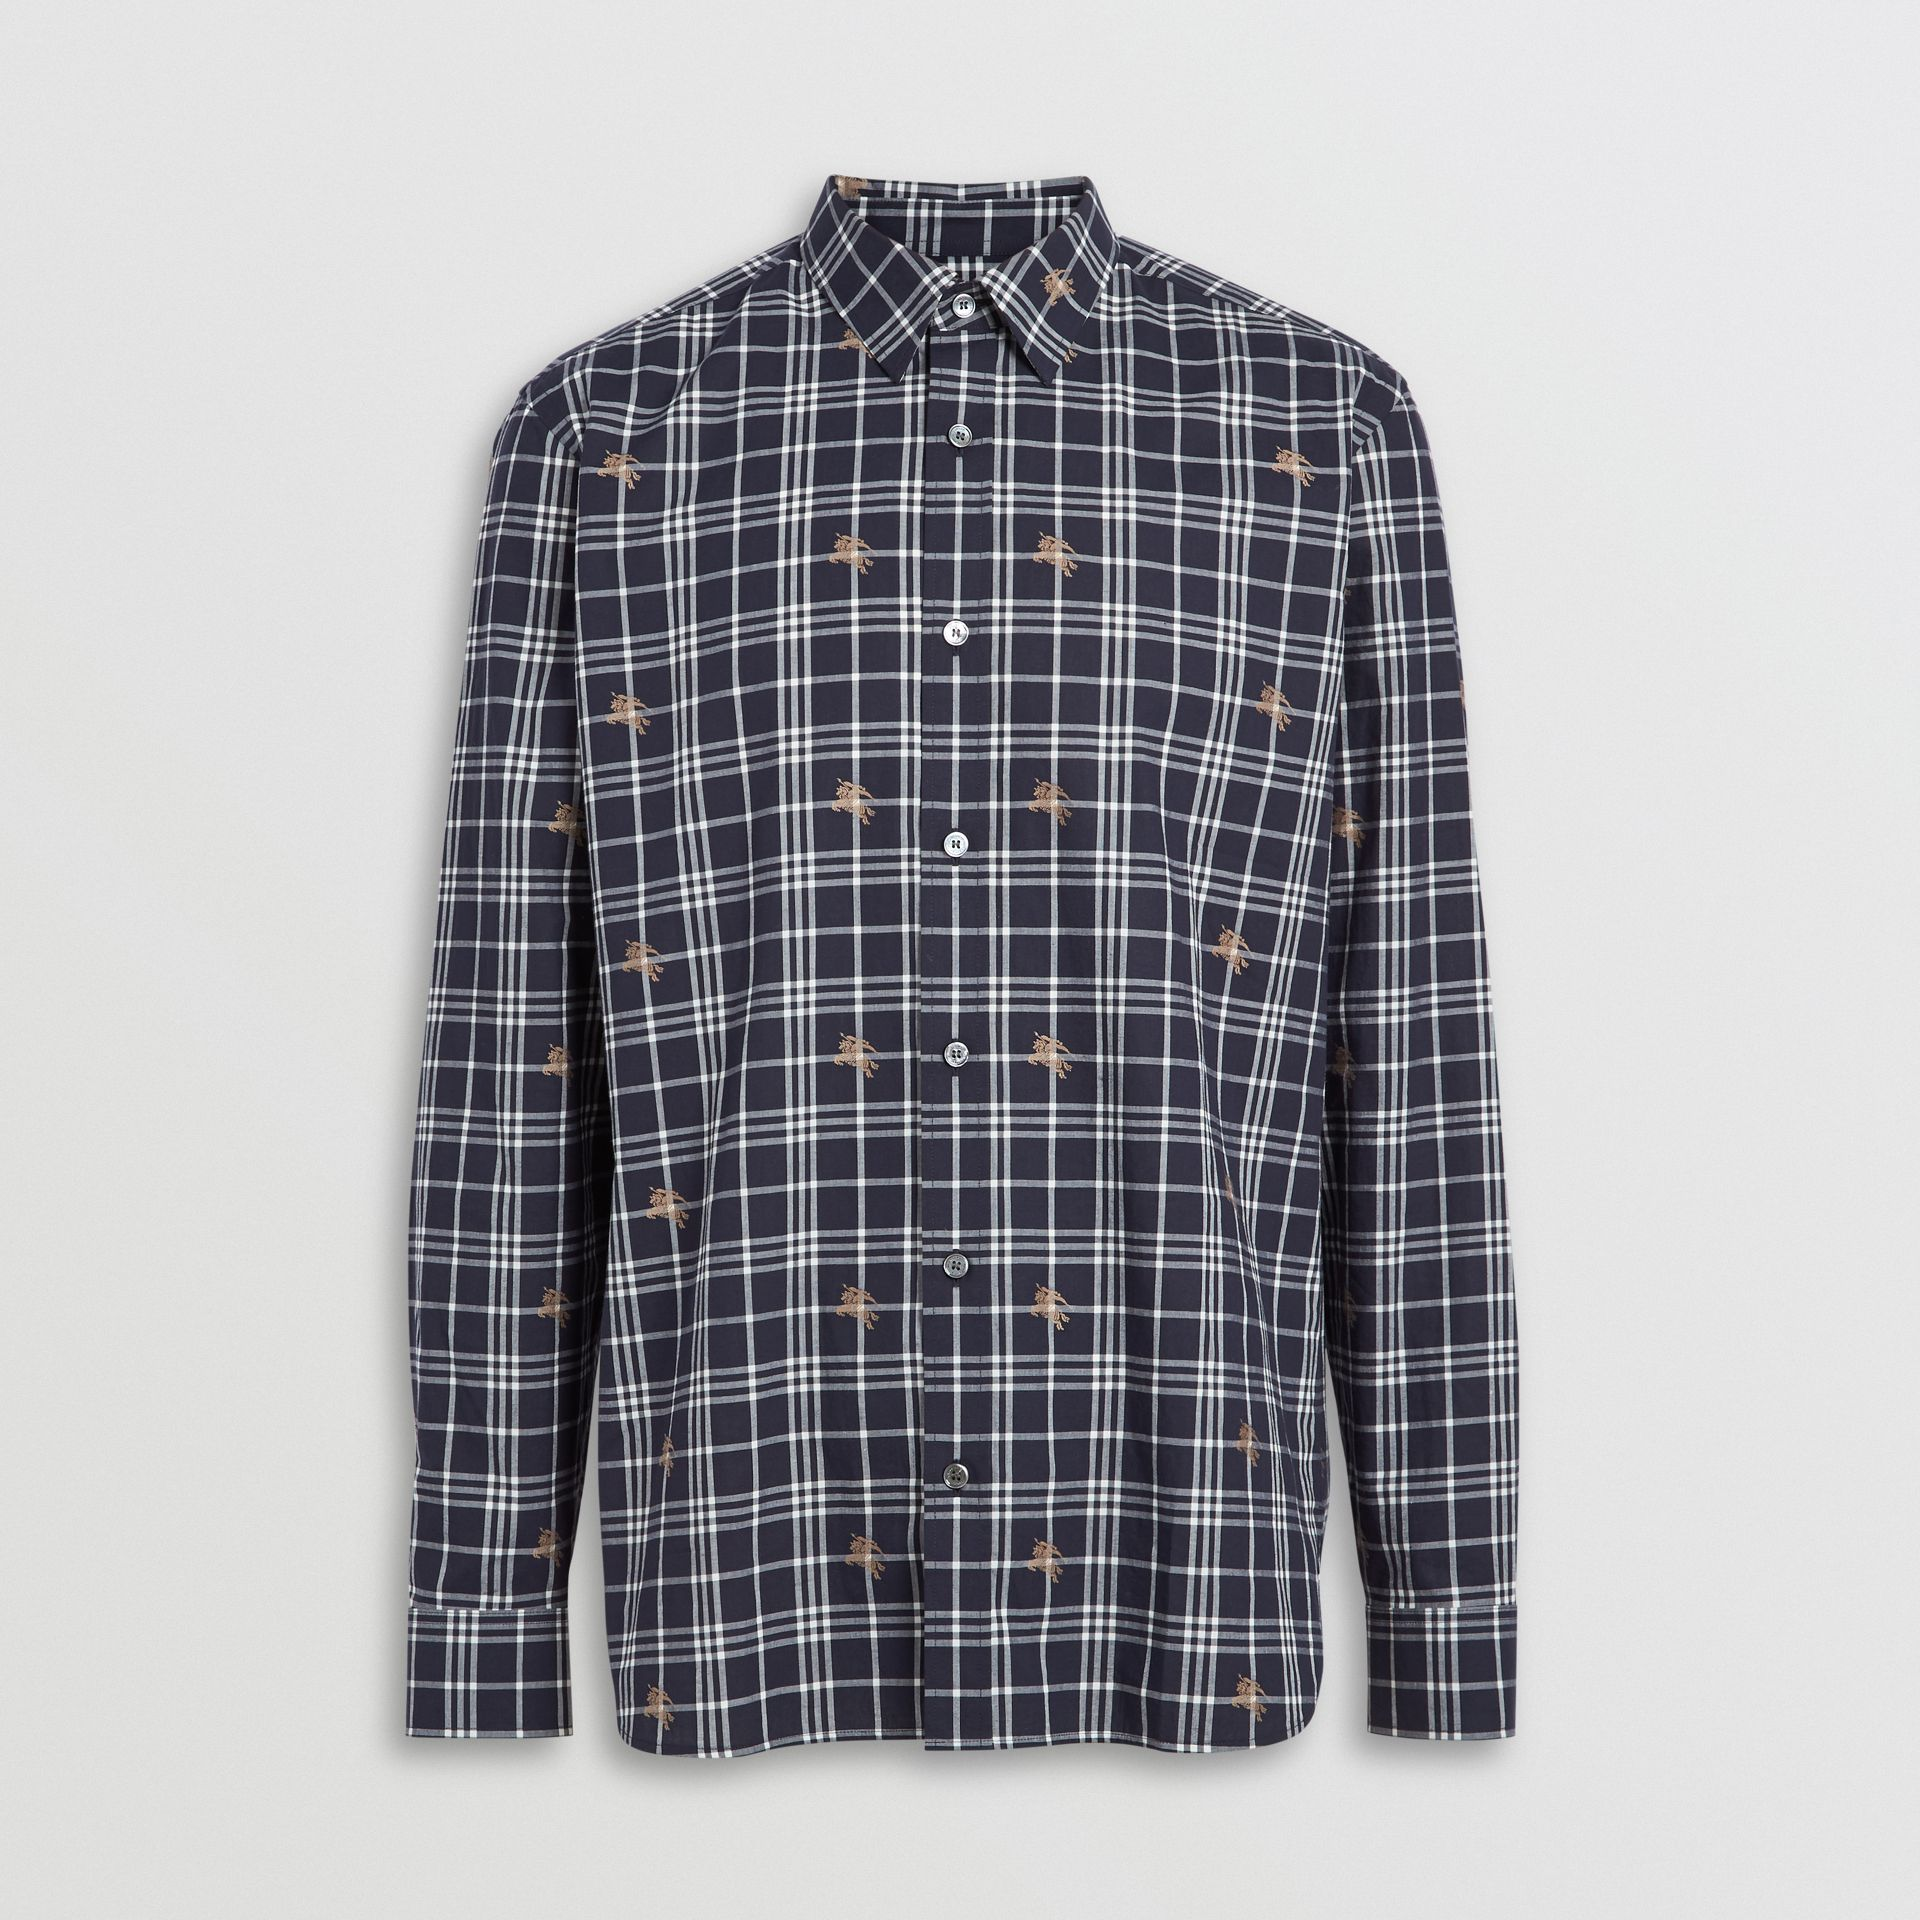 Equestrian Knight Check Cotton Shirt in Navy - Men | Burberry - gallery image 3